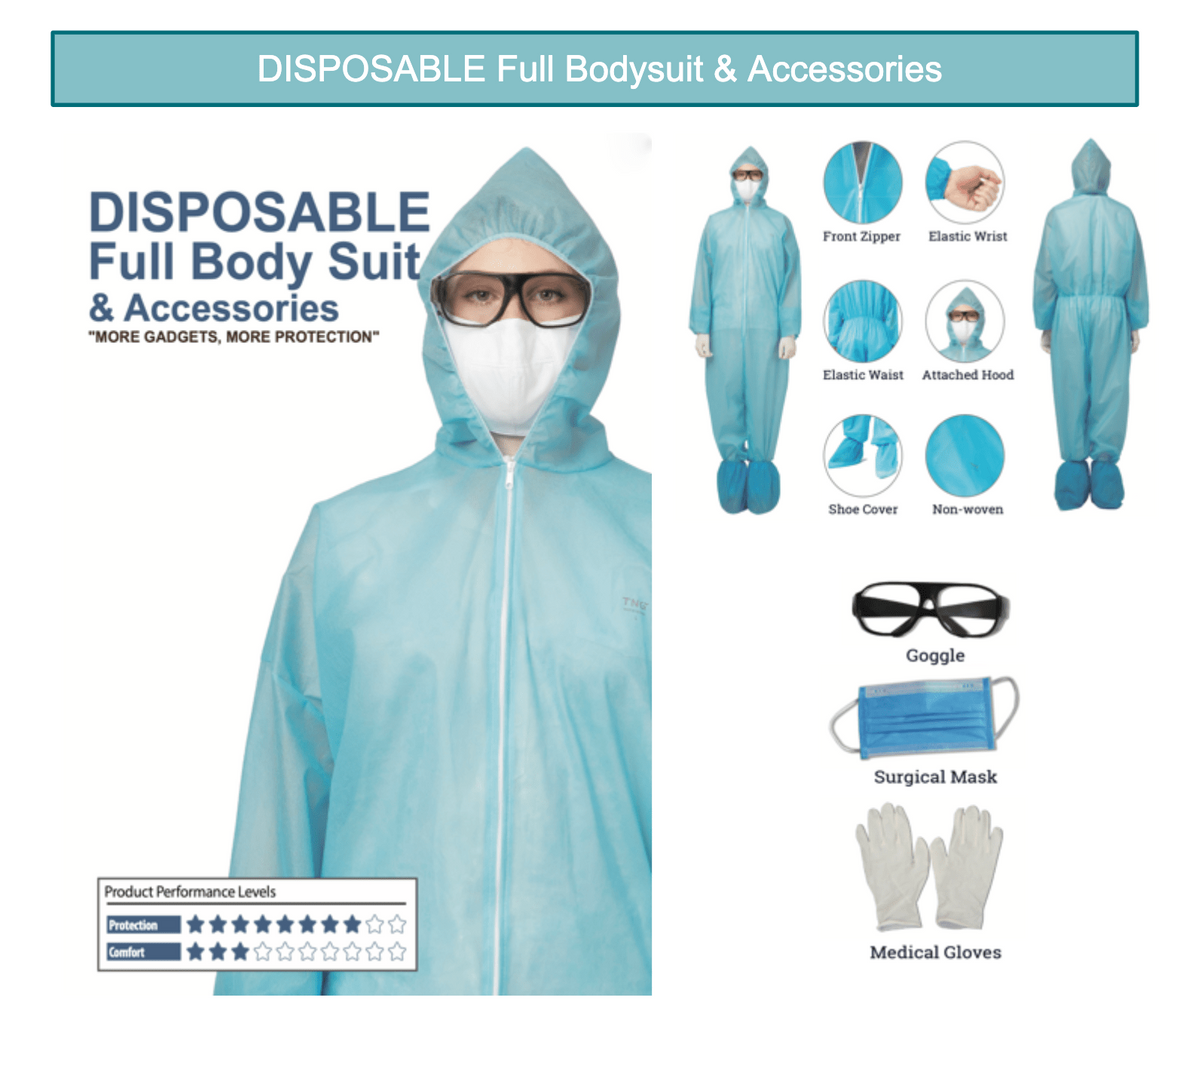 Disposable Full Body Suit + Accesories